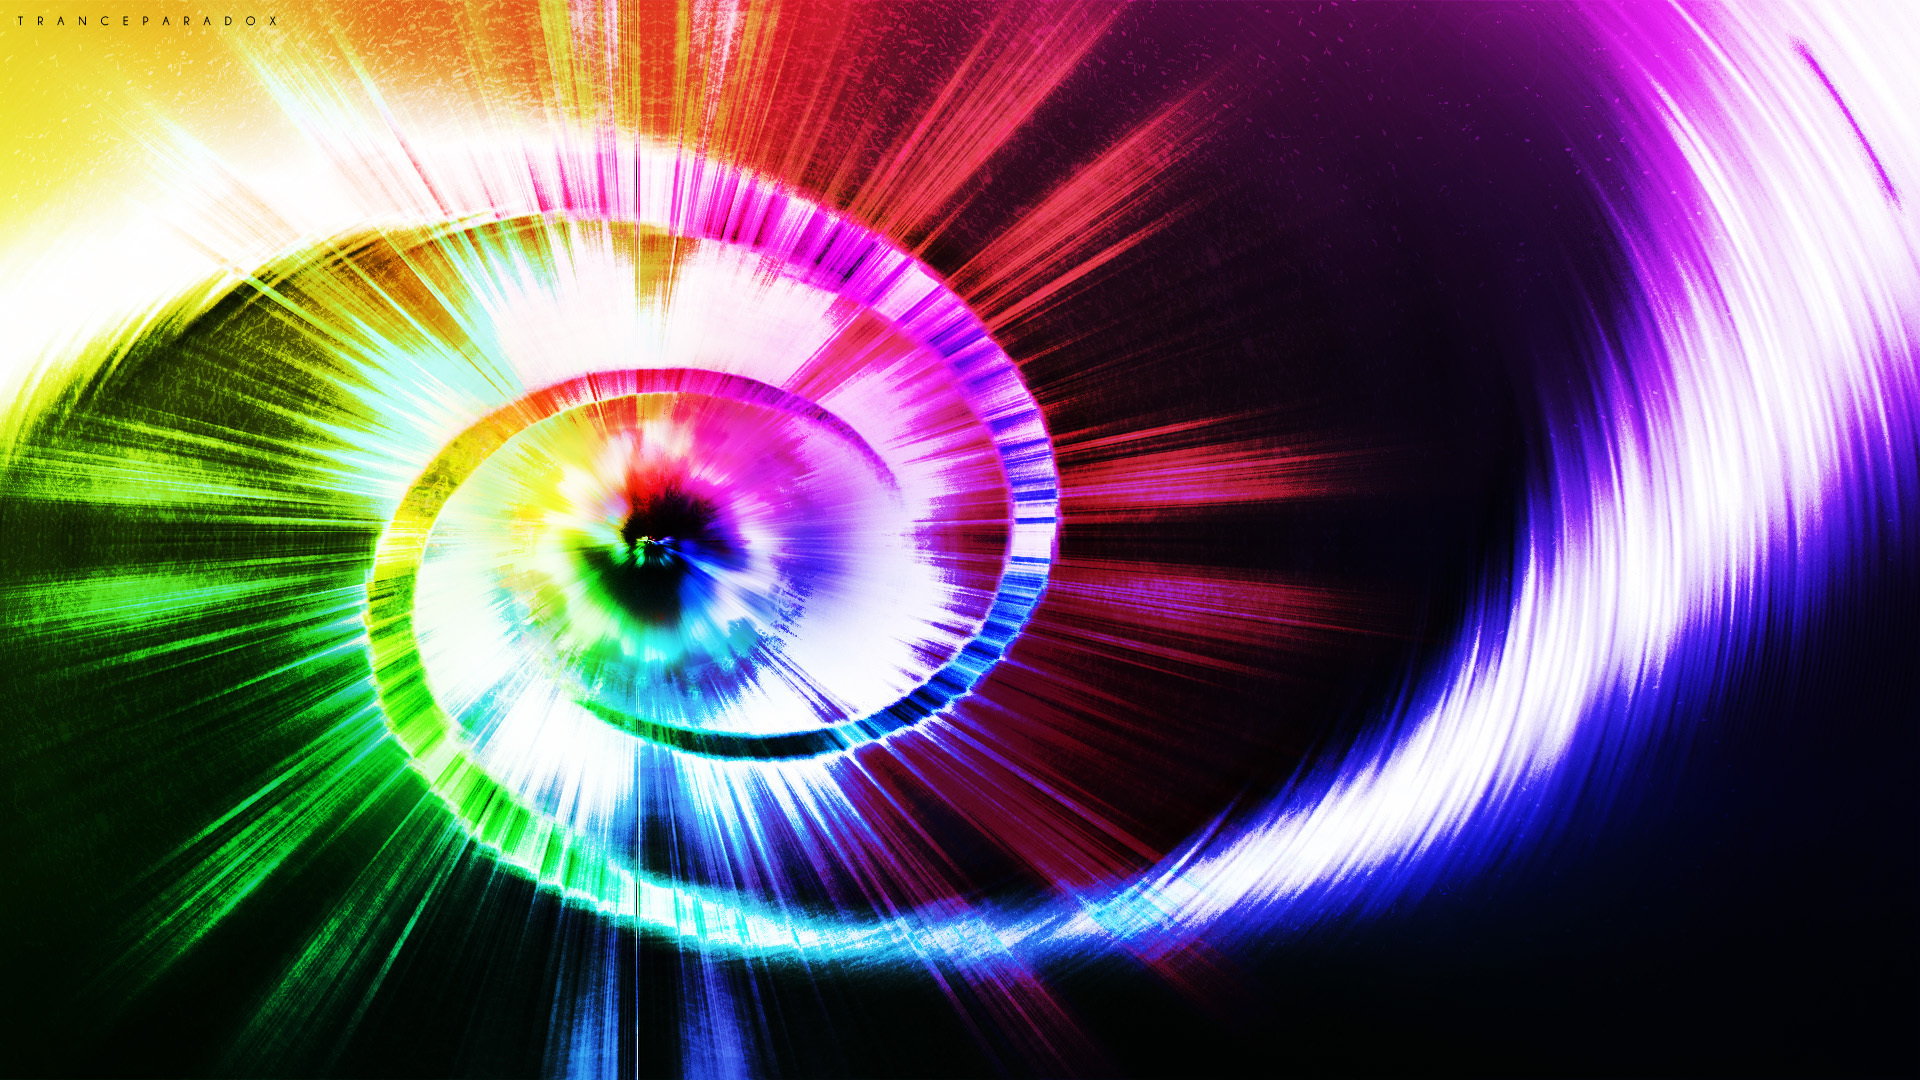 ed64027d5828 Spiral and multi colored rays wallpapers and images 1920x1080